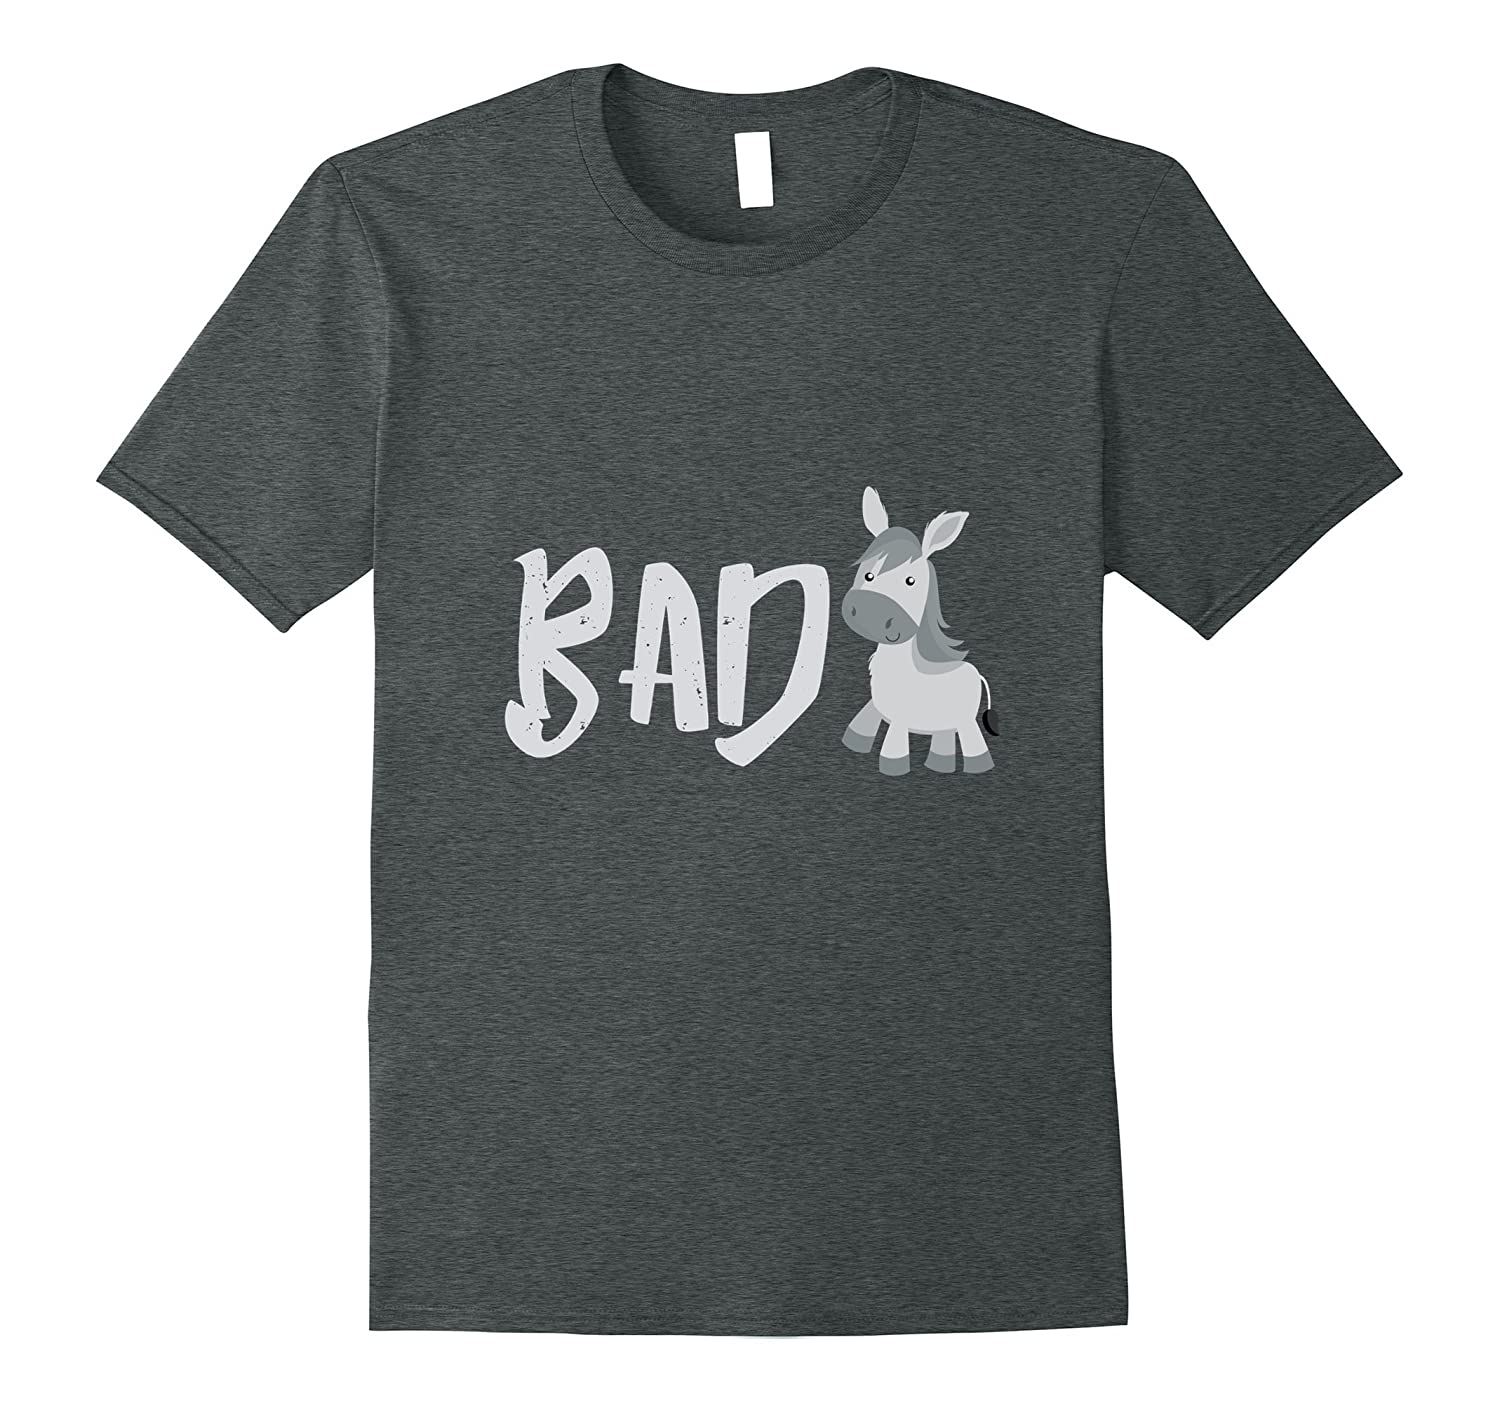 Bad Donkey Humor Pun Funny Hilarious Inappropriate T Shirt-FL